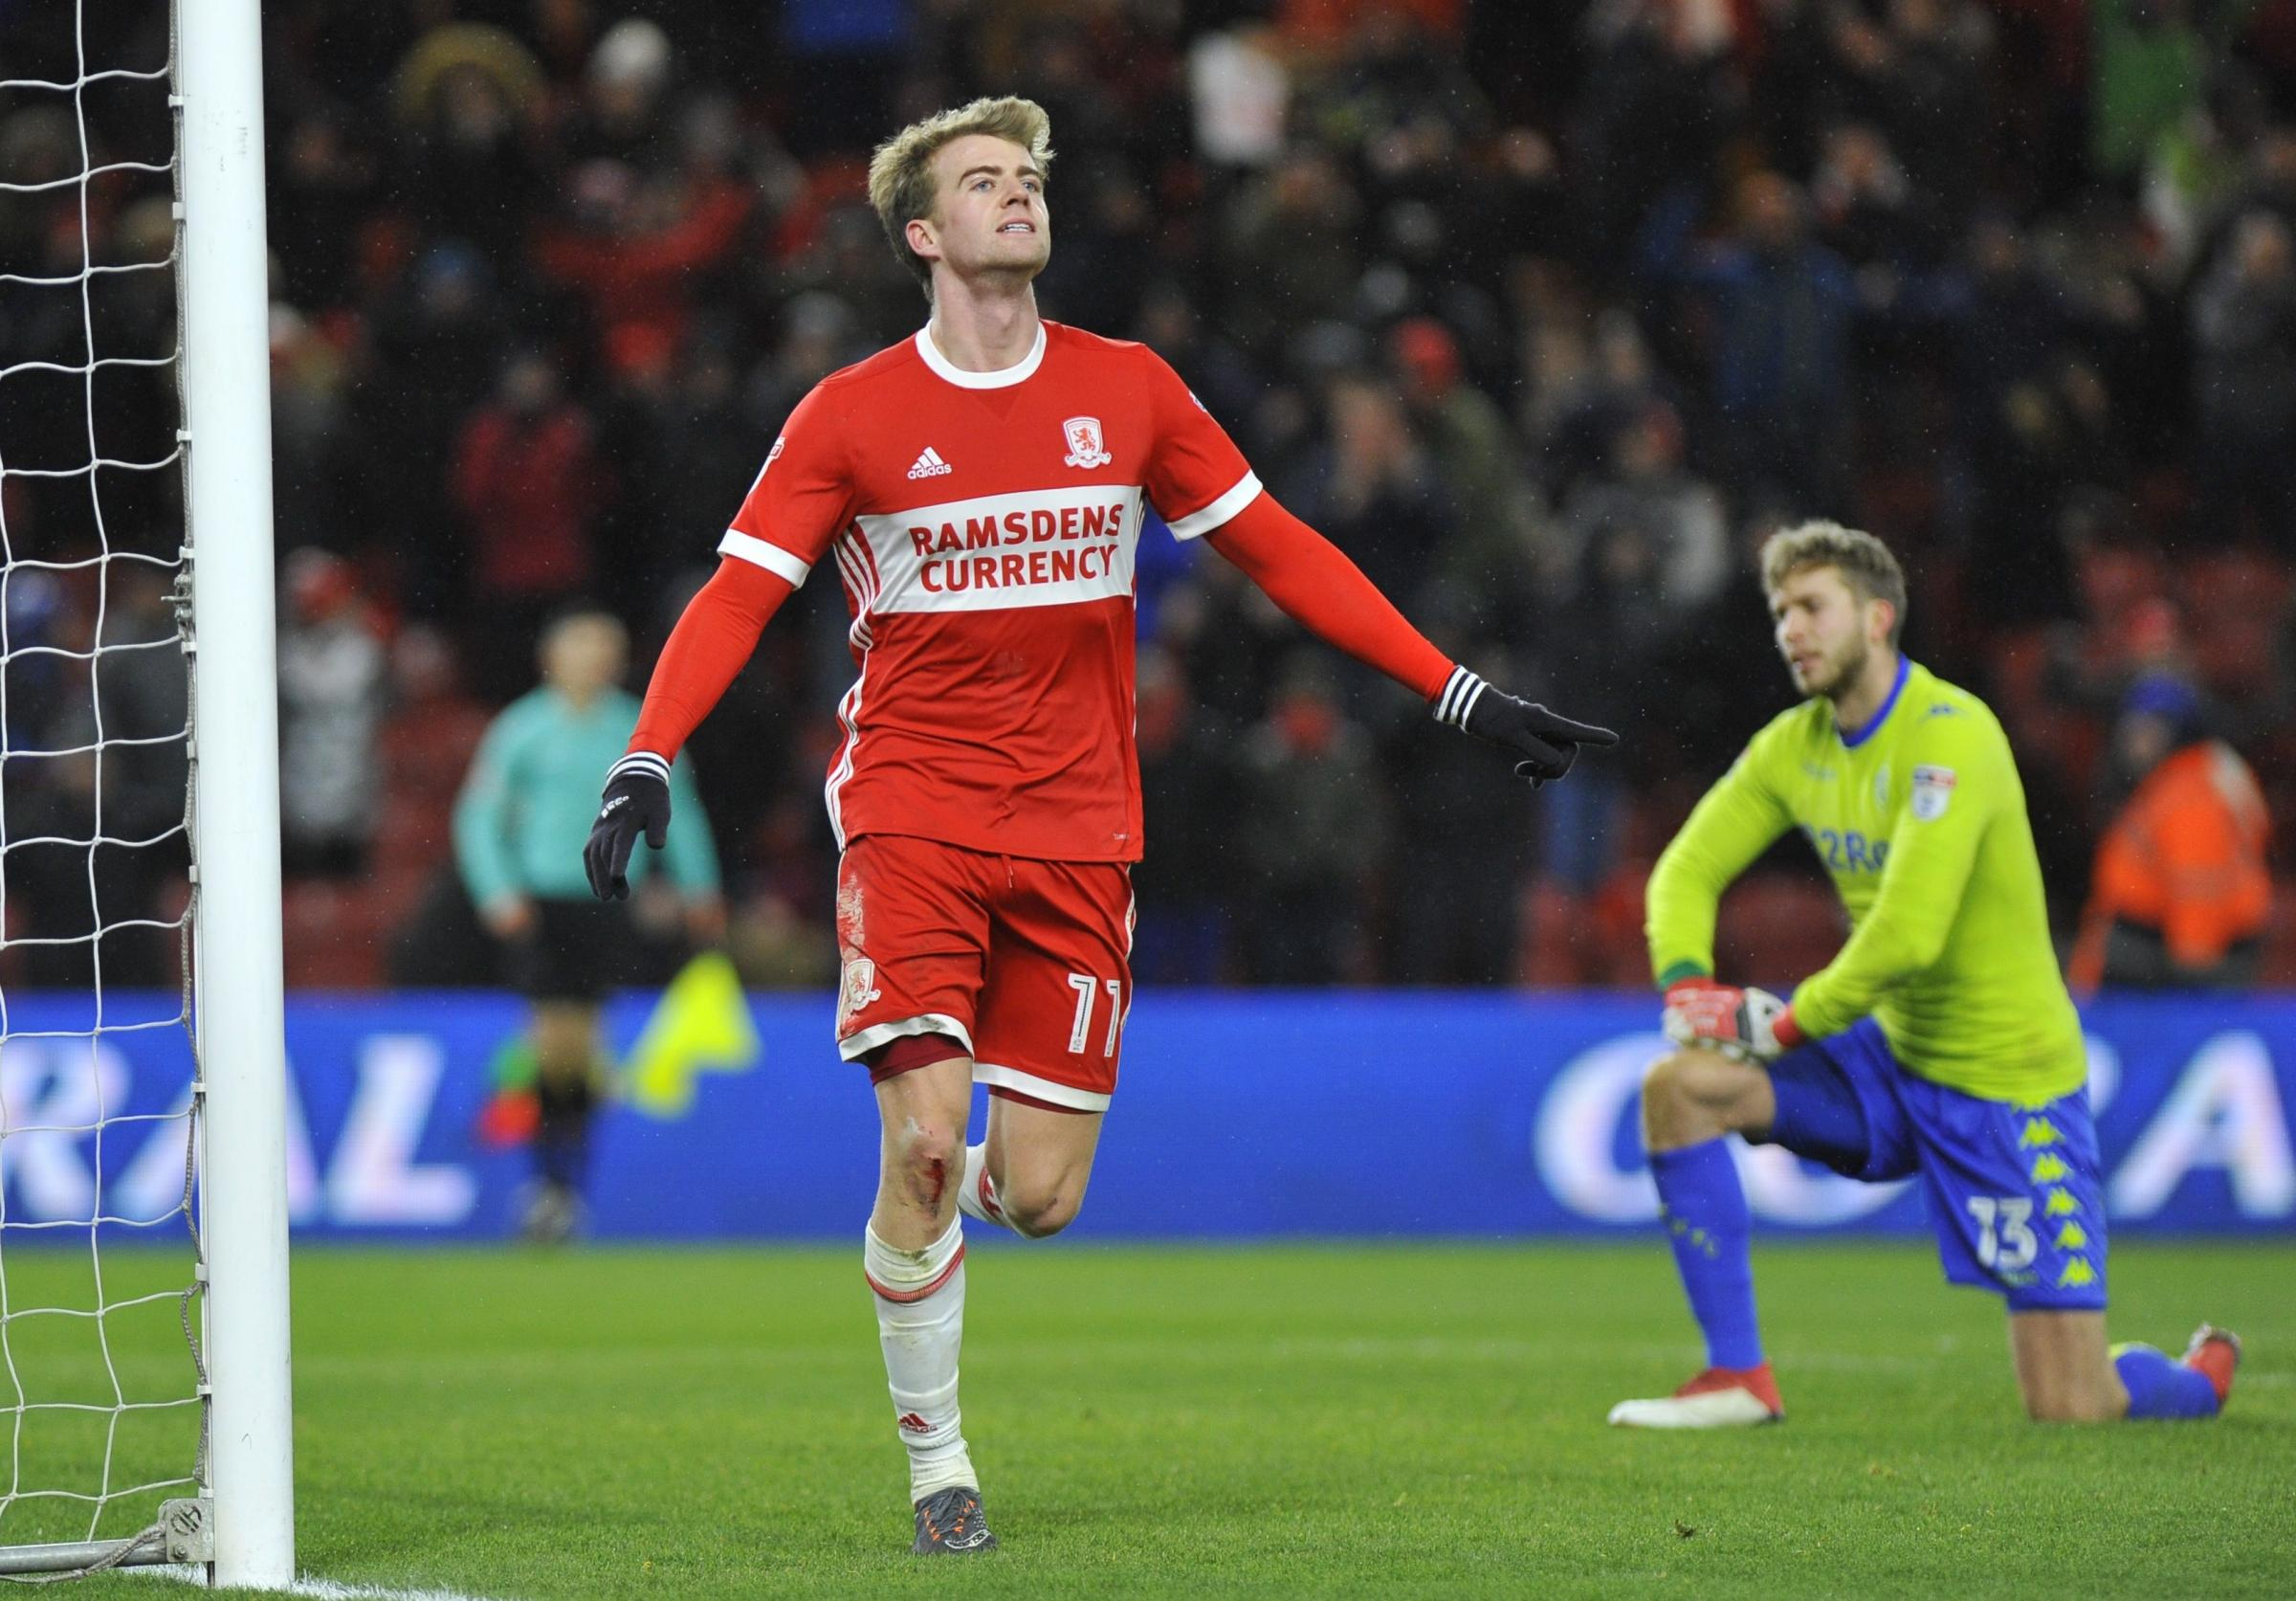 NOT FOR SALE: Middlesbrough do not want to lose striker Patrick Bamford this summer